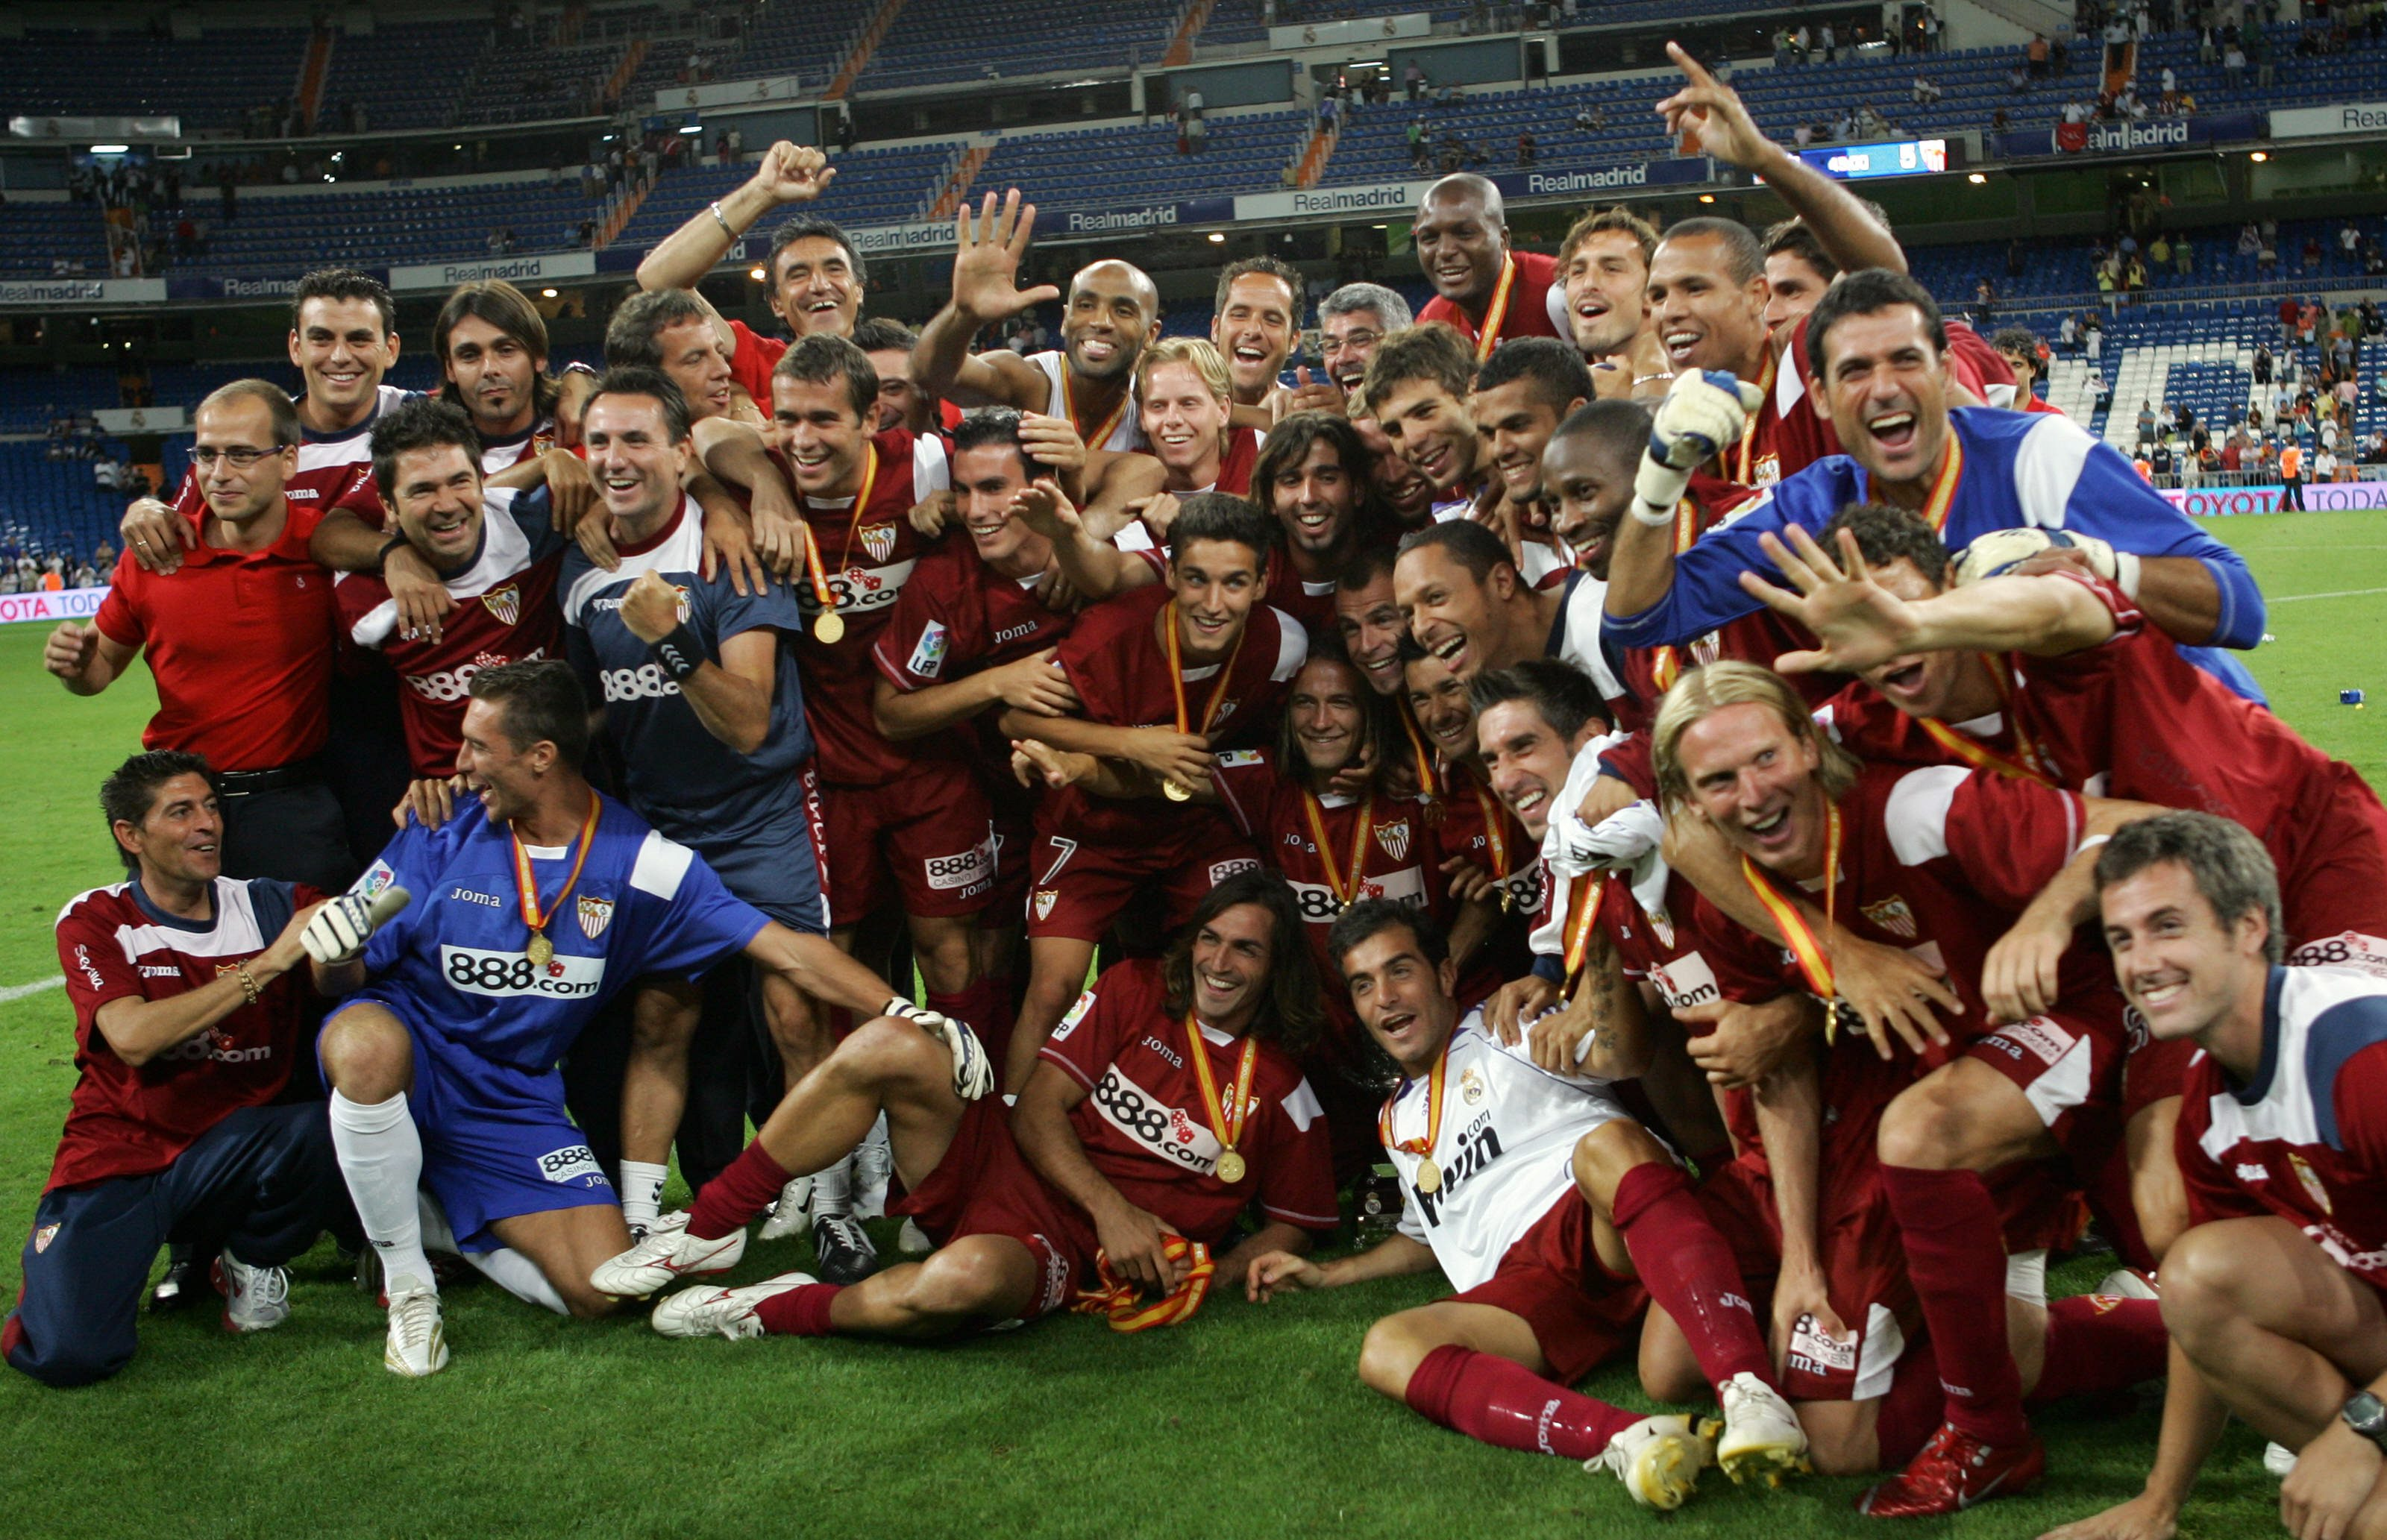 FBL-ESP-SUPERCUP-REAL MADRID-SEVILLA - 1325608.jpg